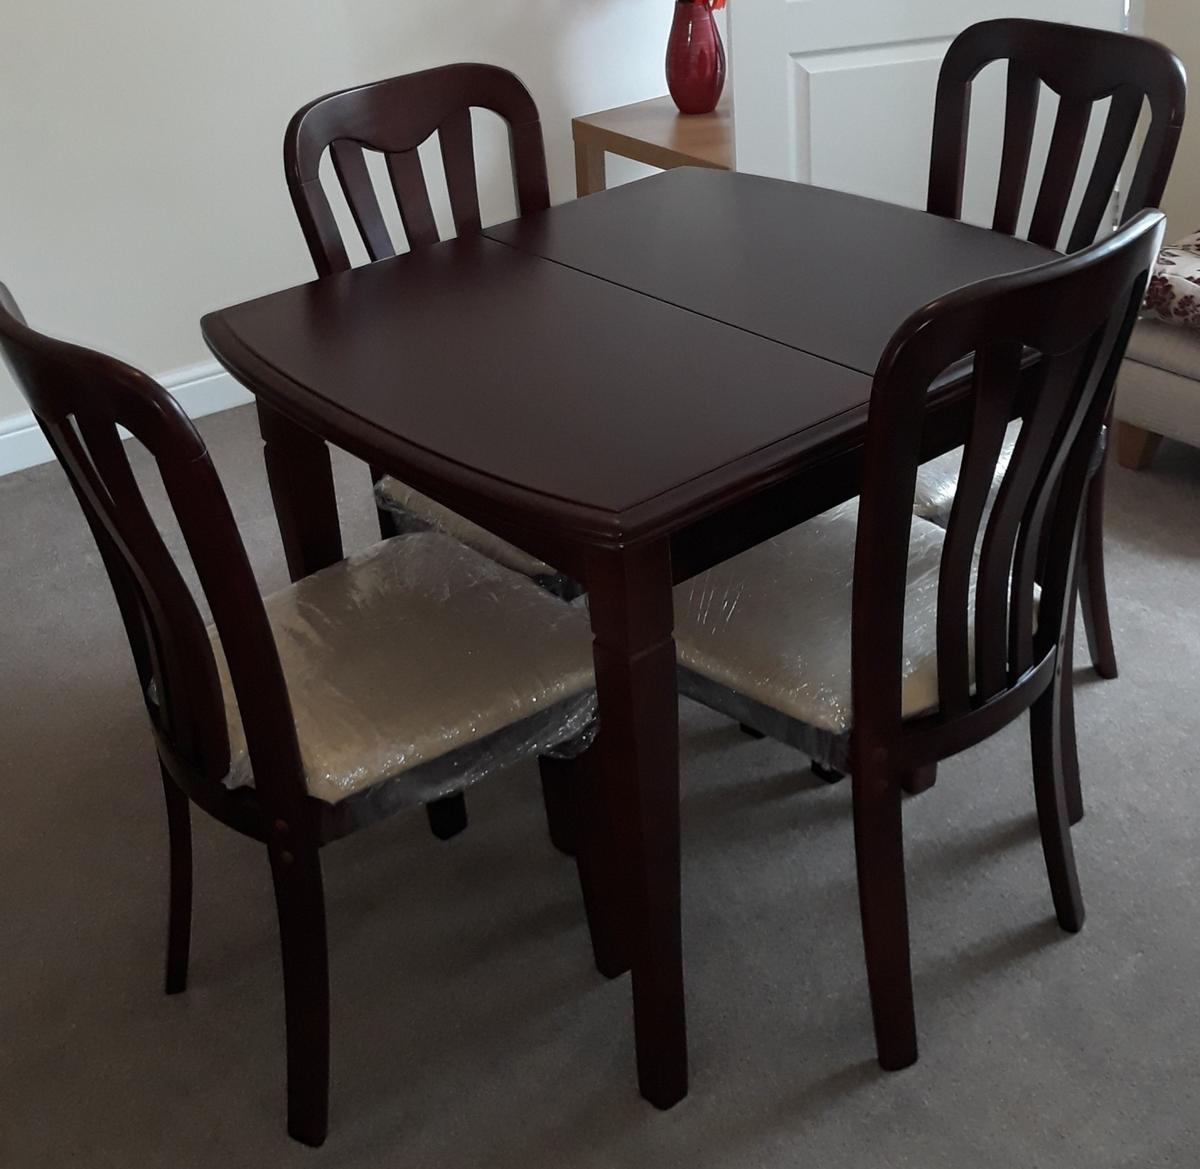 Extendable Dining Table And 9 Chairs in S95 Derbyshire für £ 9 ...